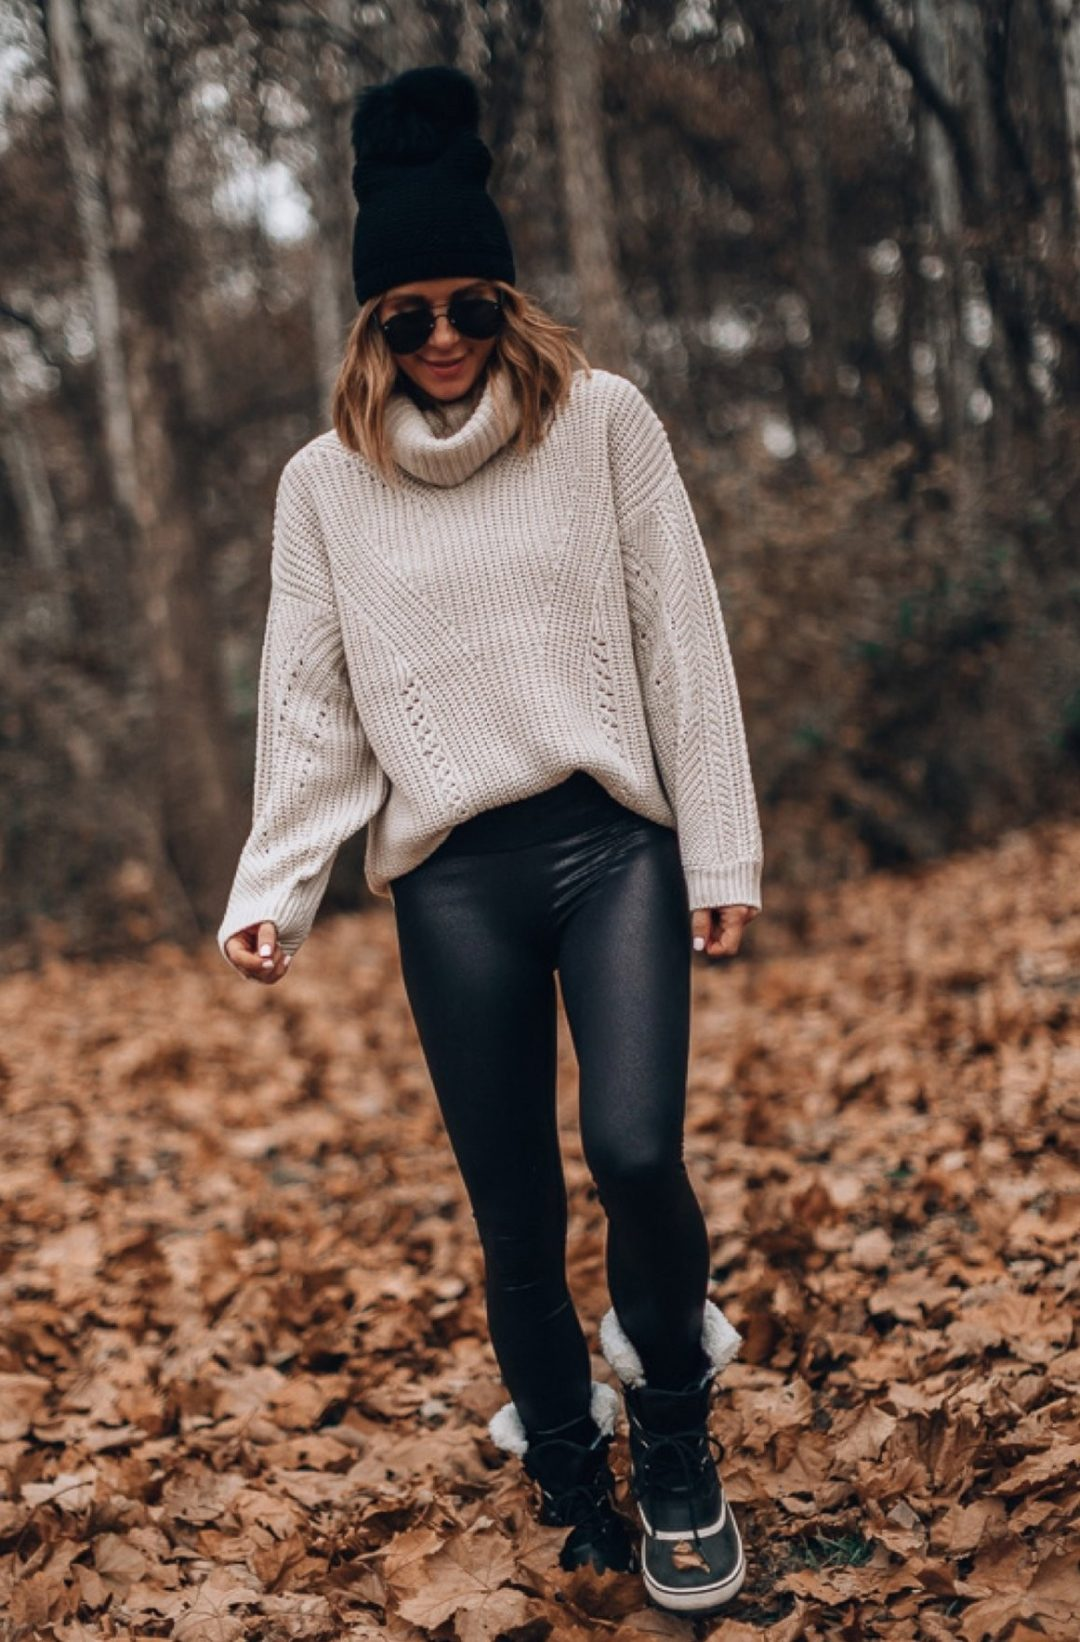 Sweater with leggings outfit for winter